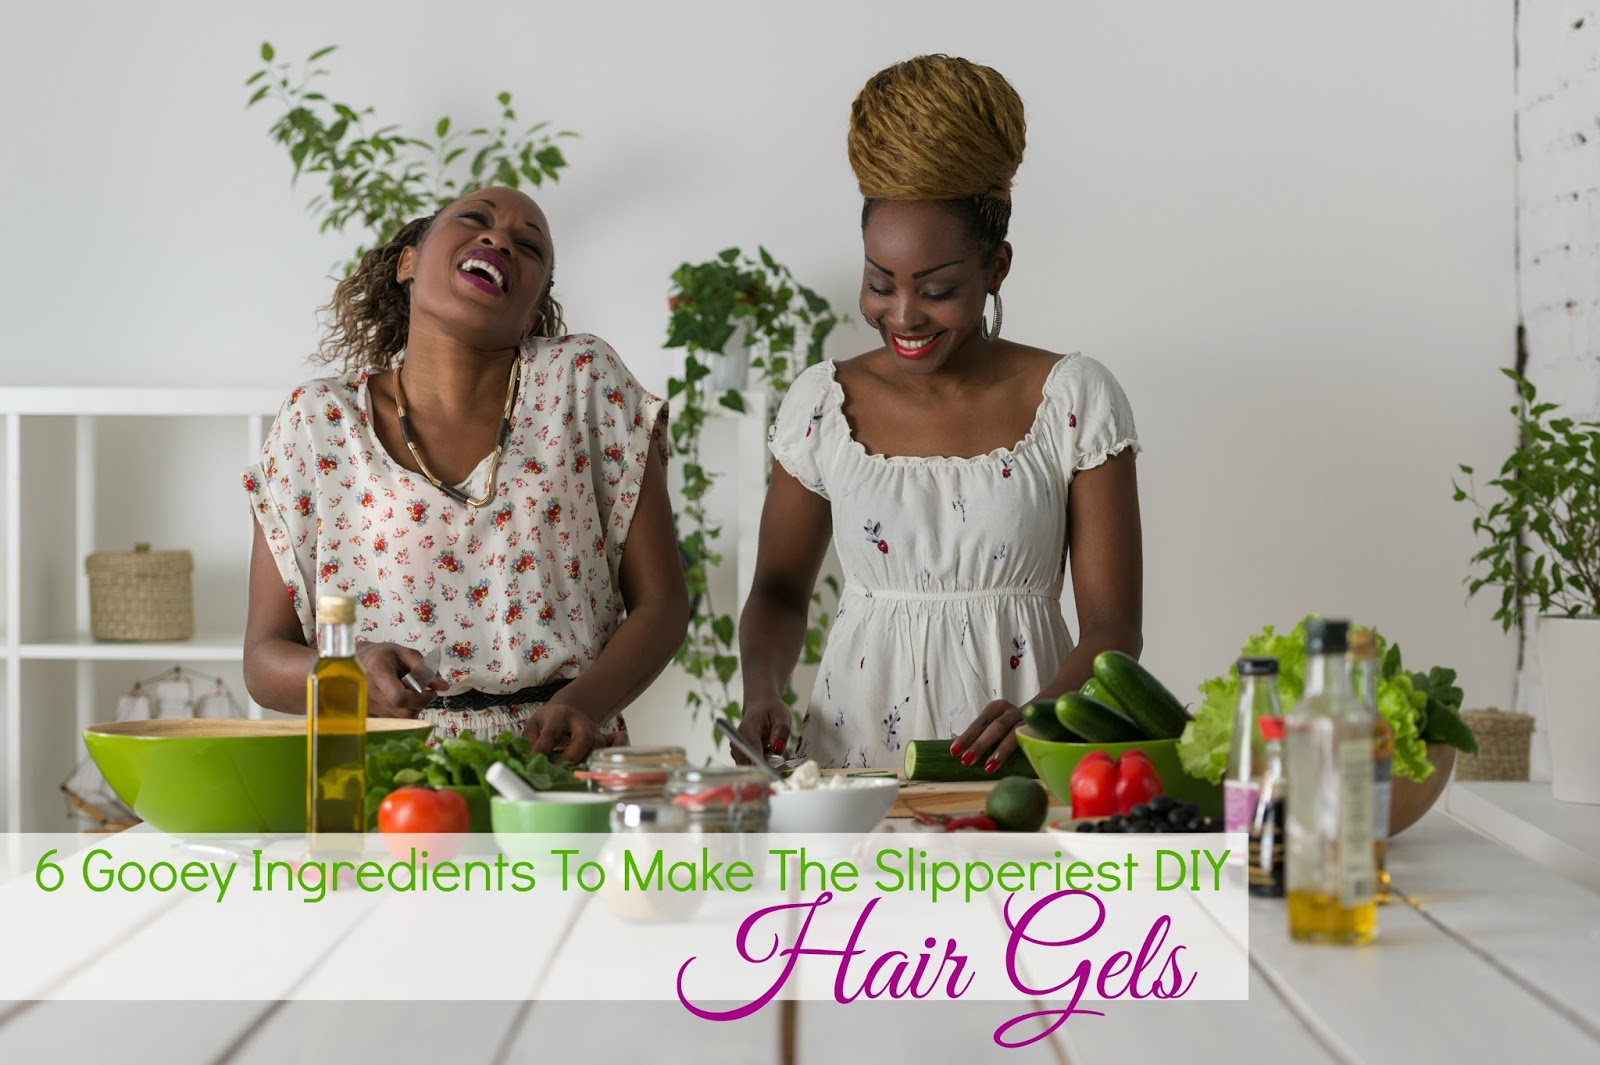 DIY Hair Gel Using The Best Ingredients For Slip & Fighting Frizz. It's time to make your own hair gel and we've got the top ingredients to make the best!